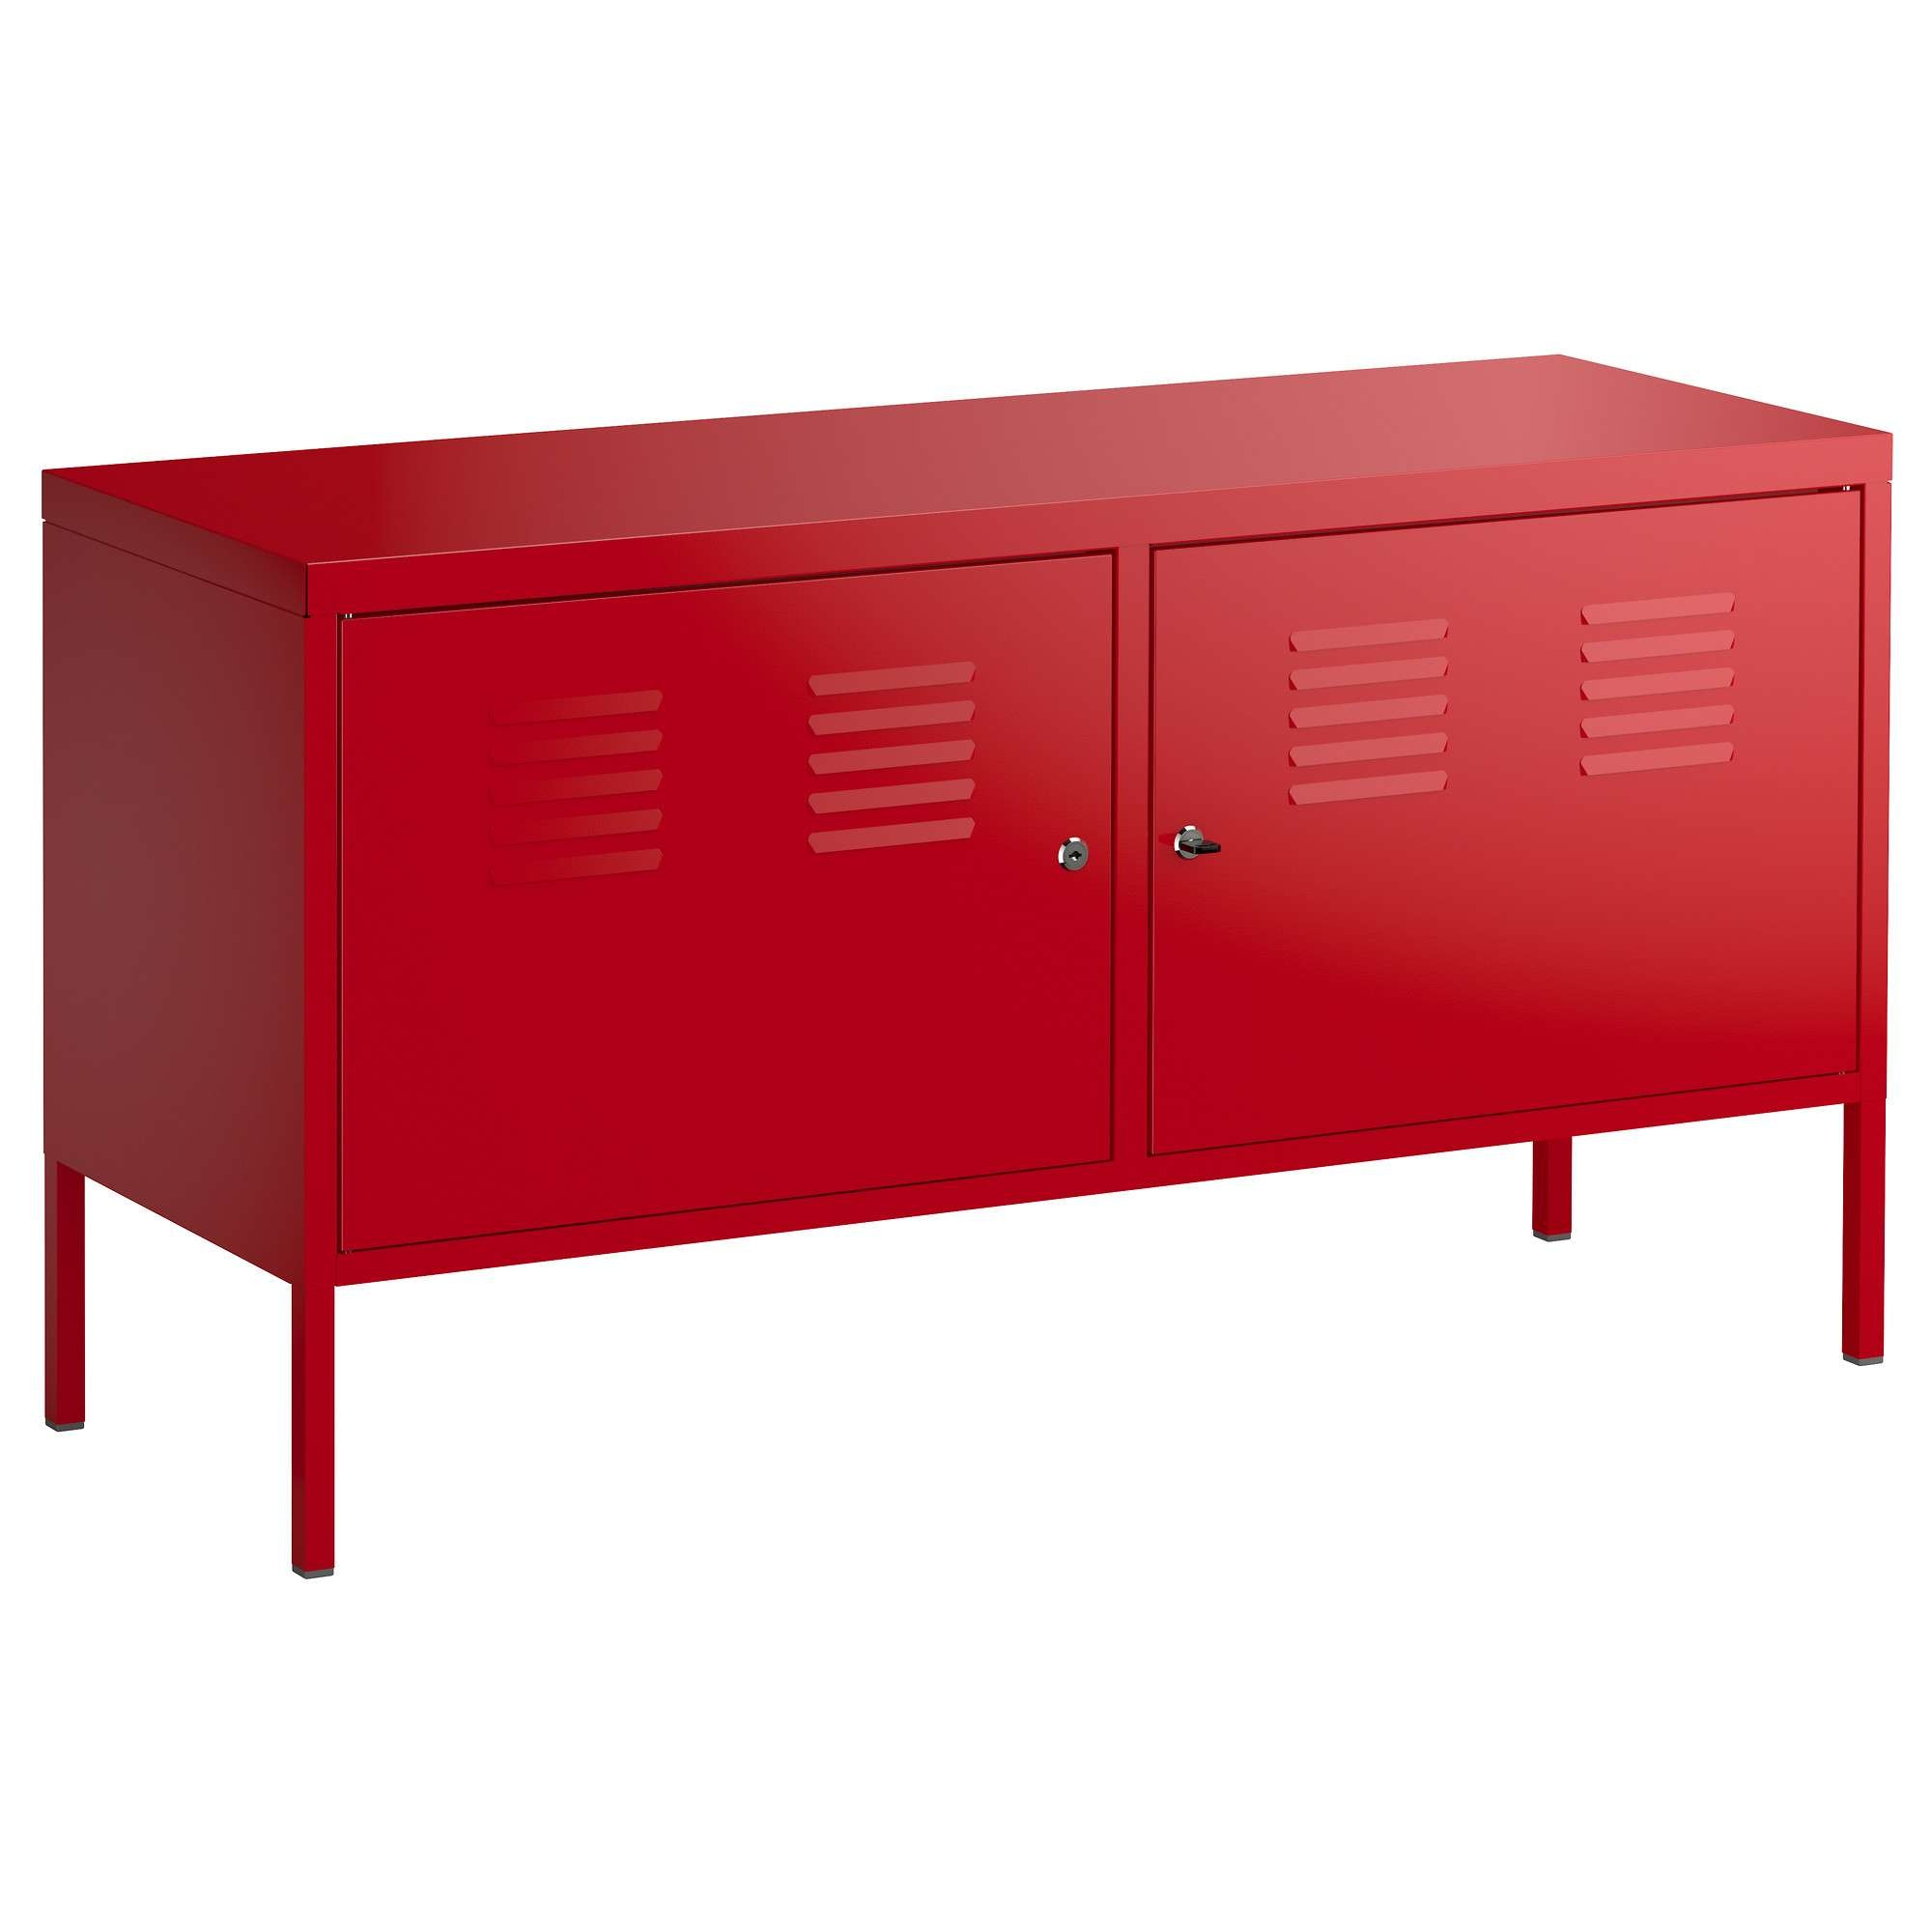 Ikea Ps Cabinet – Red – Ikea Throughout Red Tv Cabinets (Gallery 9 of 20)